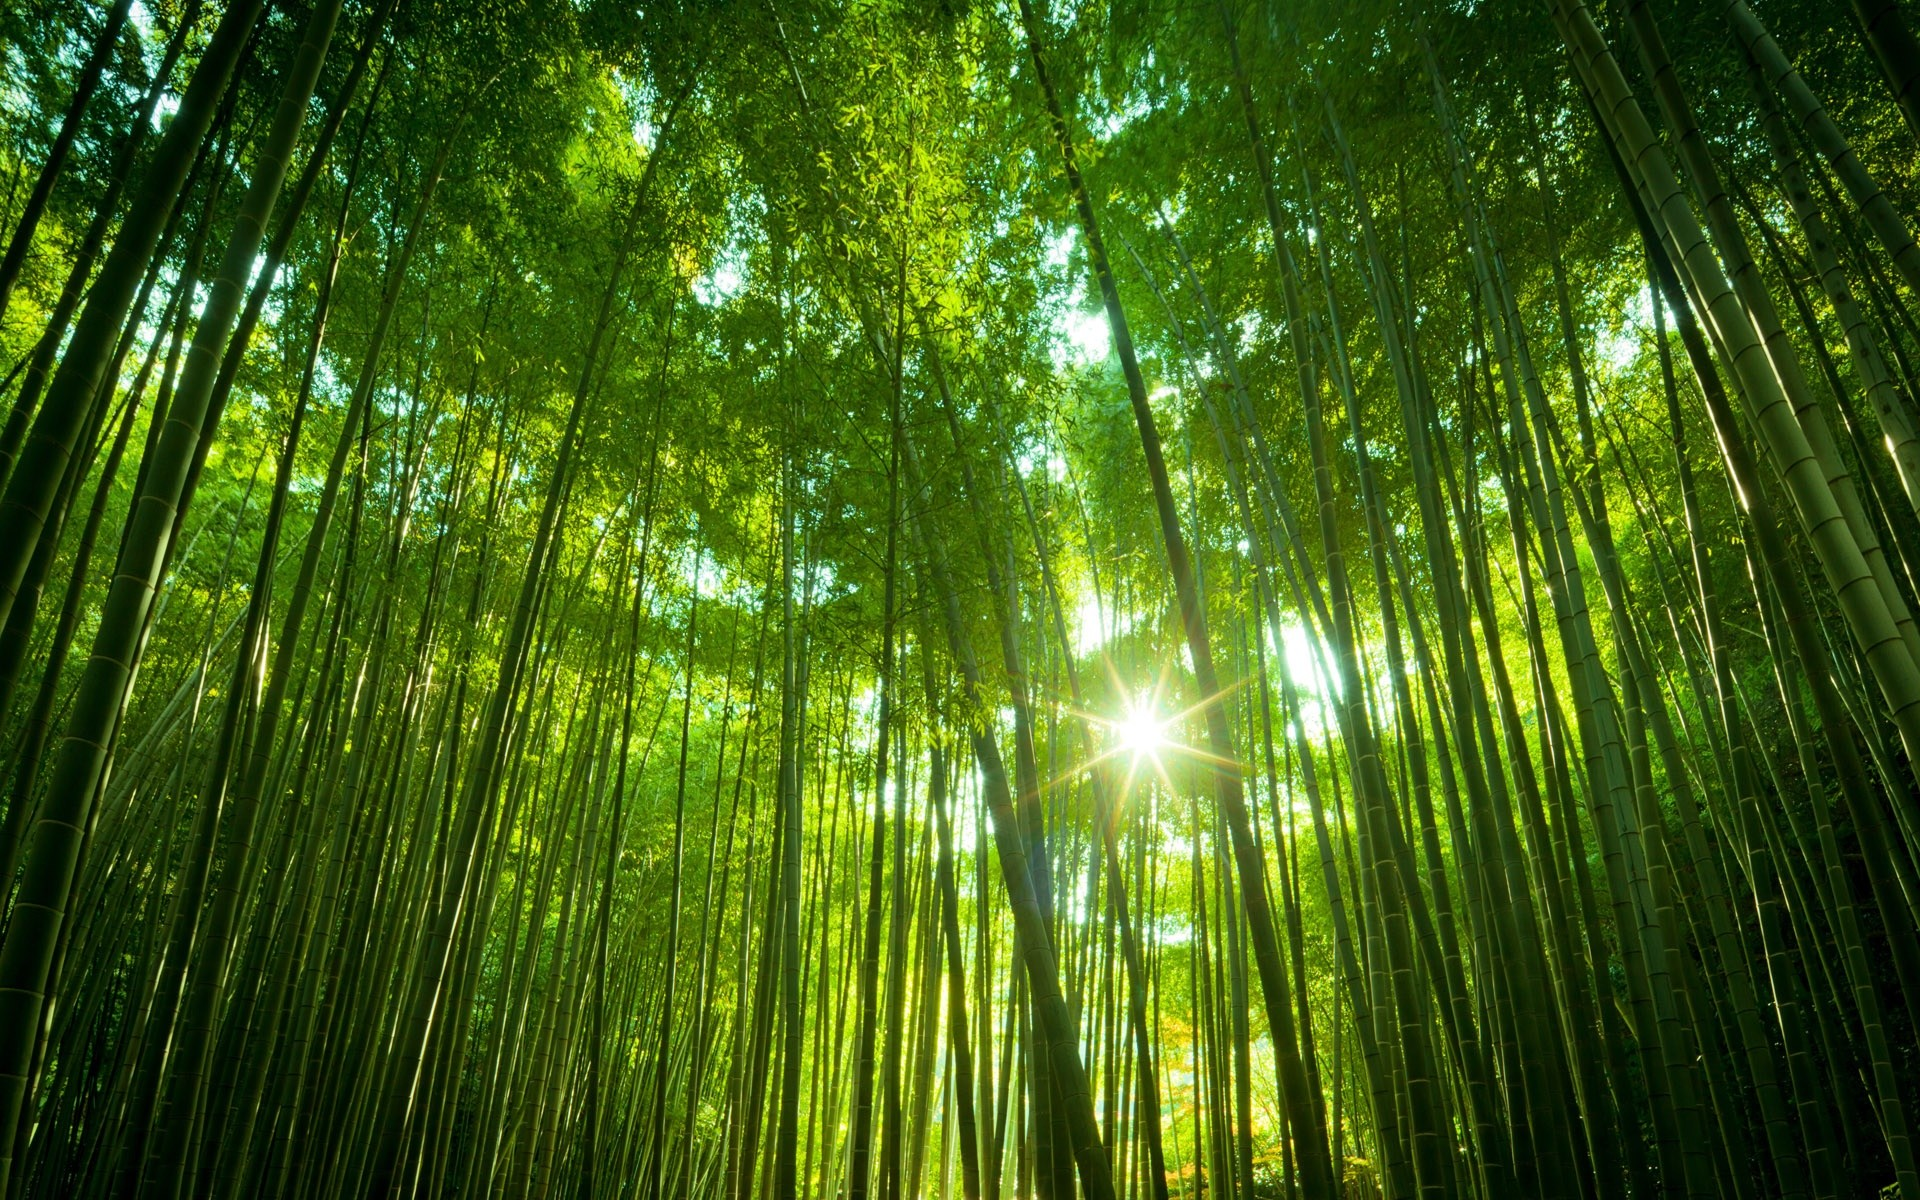 Japanese Bamboo Forest